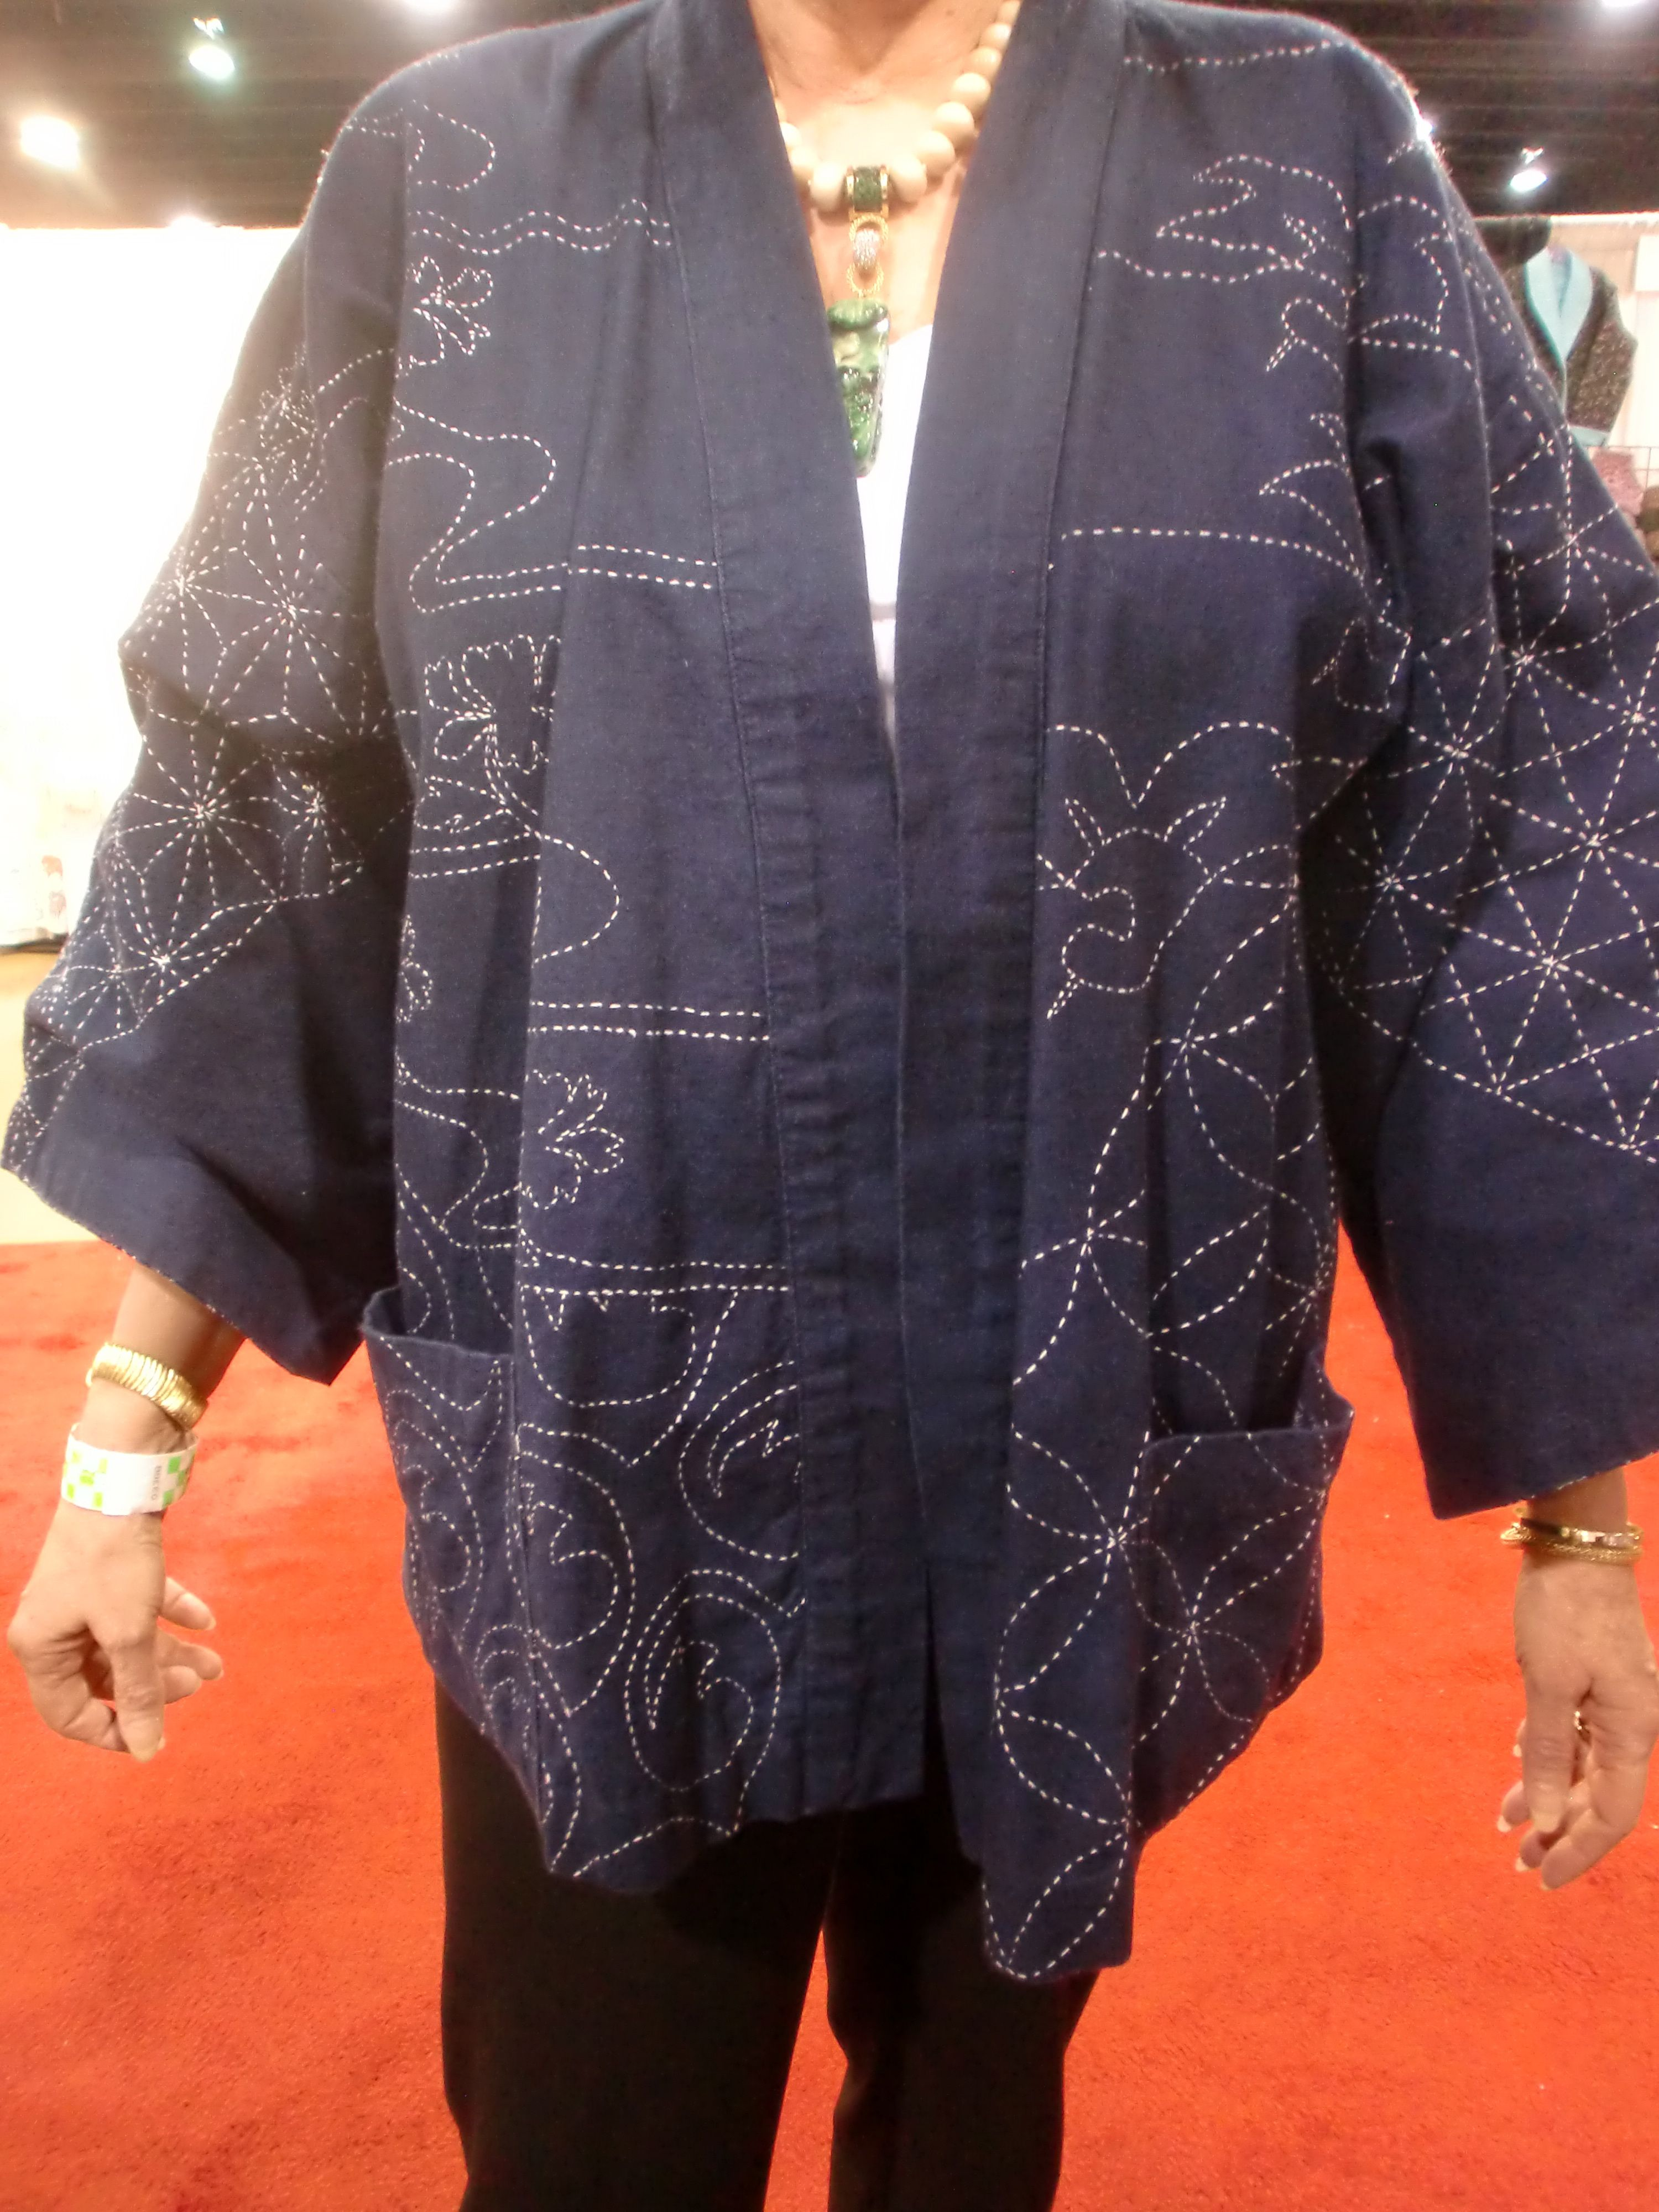 Absolutely outstanding Sashiko work on this elegant jacket - I ... : original sewing and quilt expo - Adamdwight.com